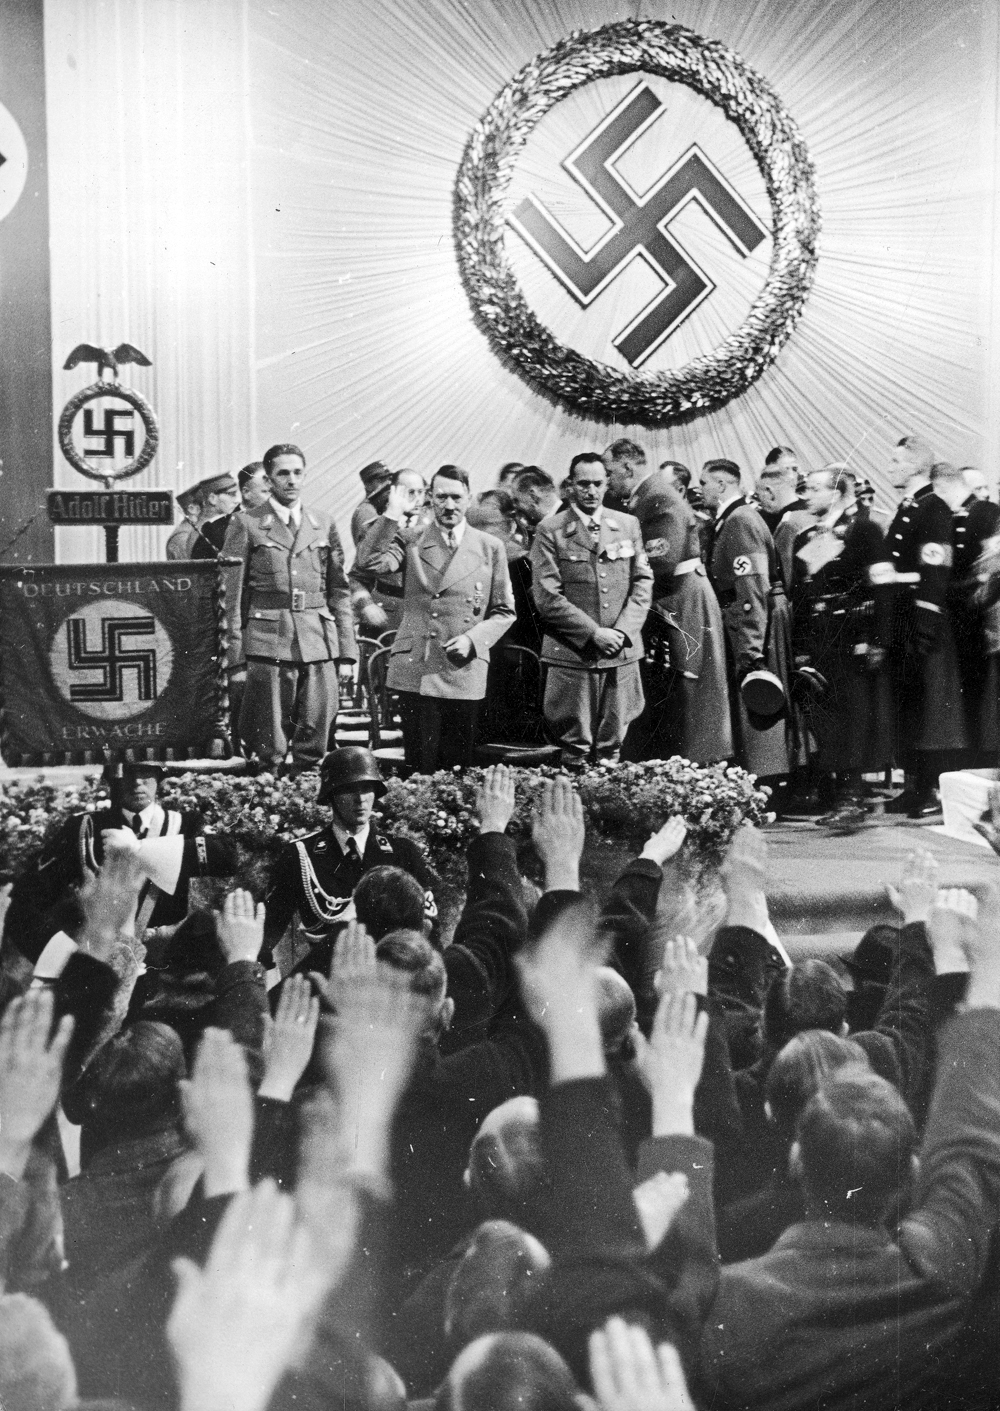 Adolf Hitler with Konrad Henlein and party members during his visit to the Sudetenland town of Reichenberg